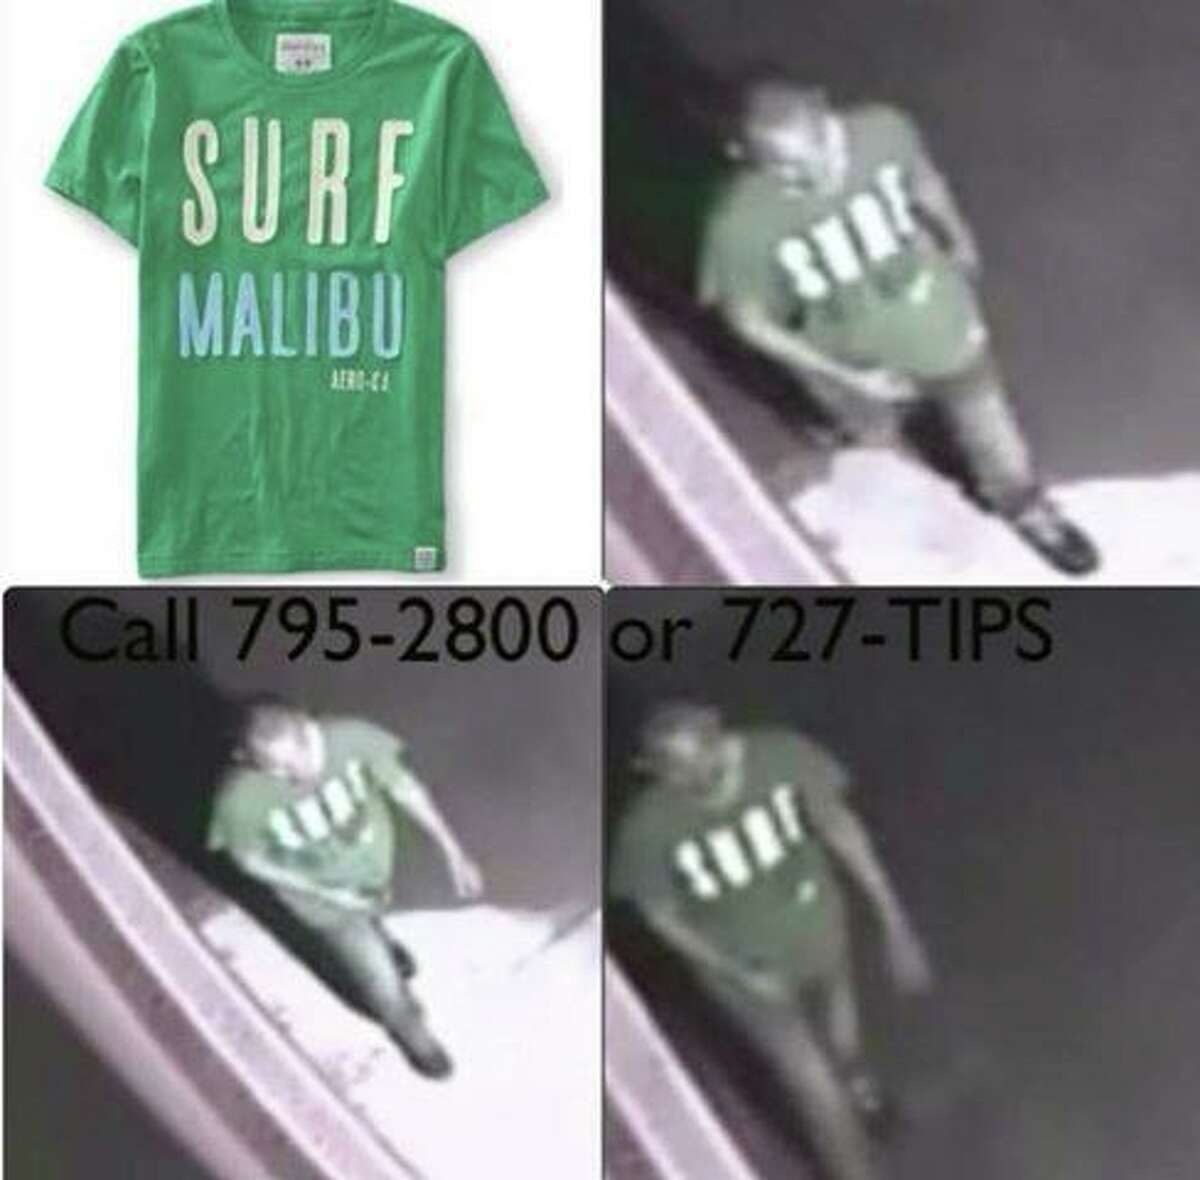 Laredo police are trying to identify this man in relation to a homicide reported in 2014. The man was believed to be using a green T-shirt similar to the one shown in this photo.